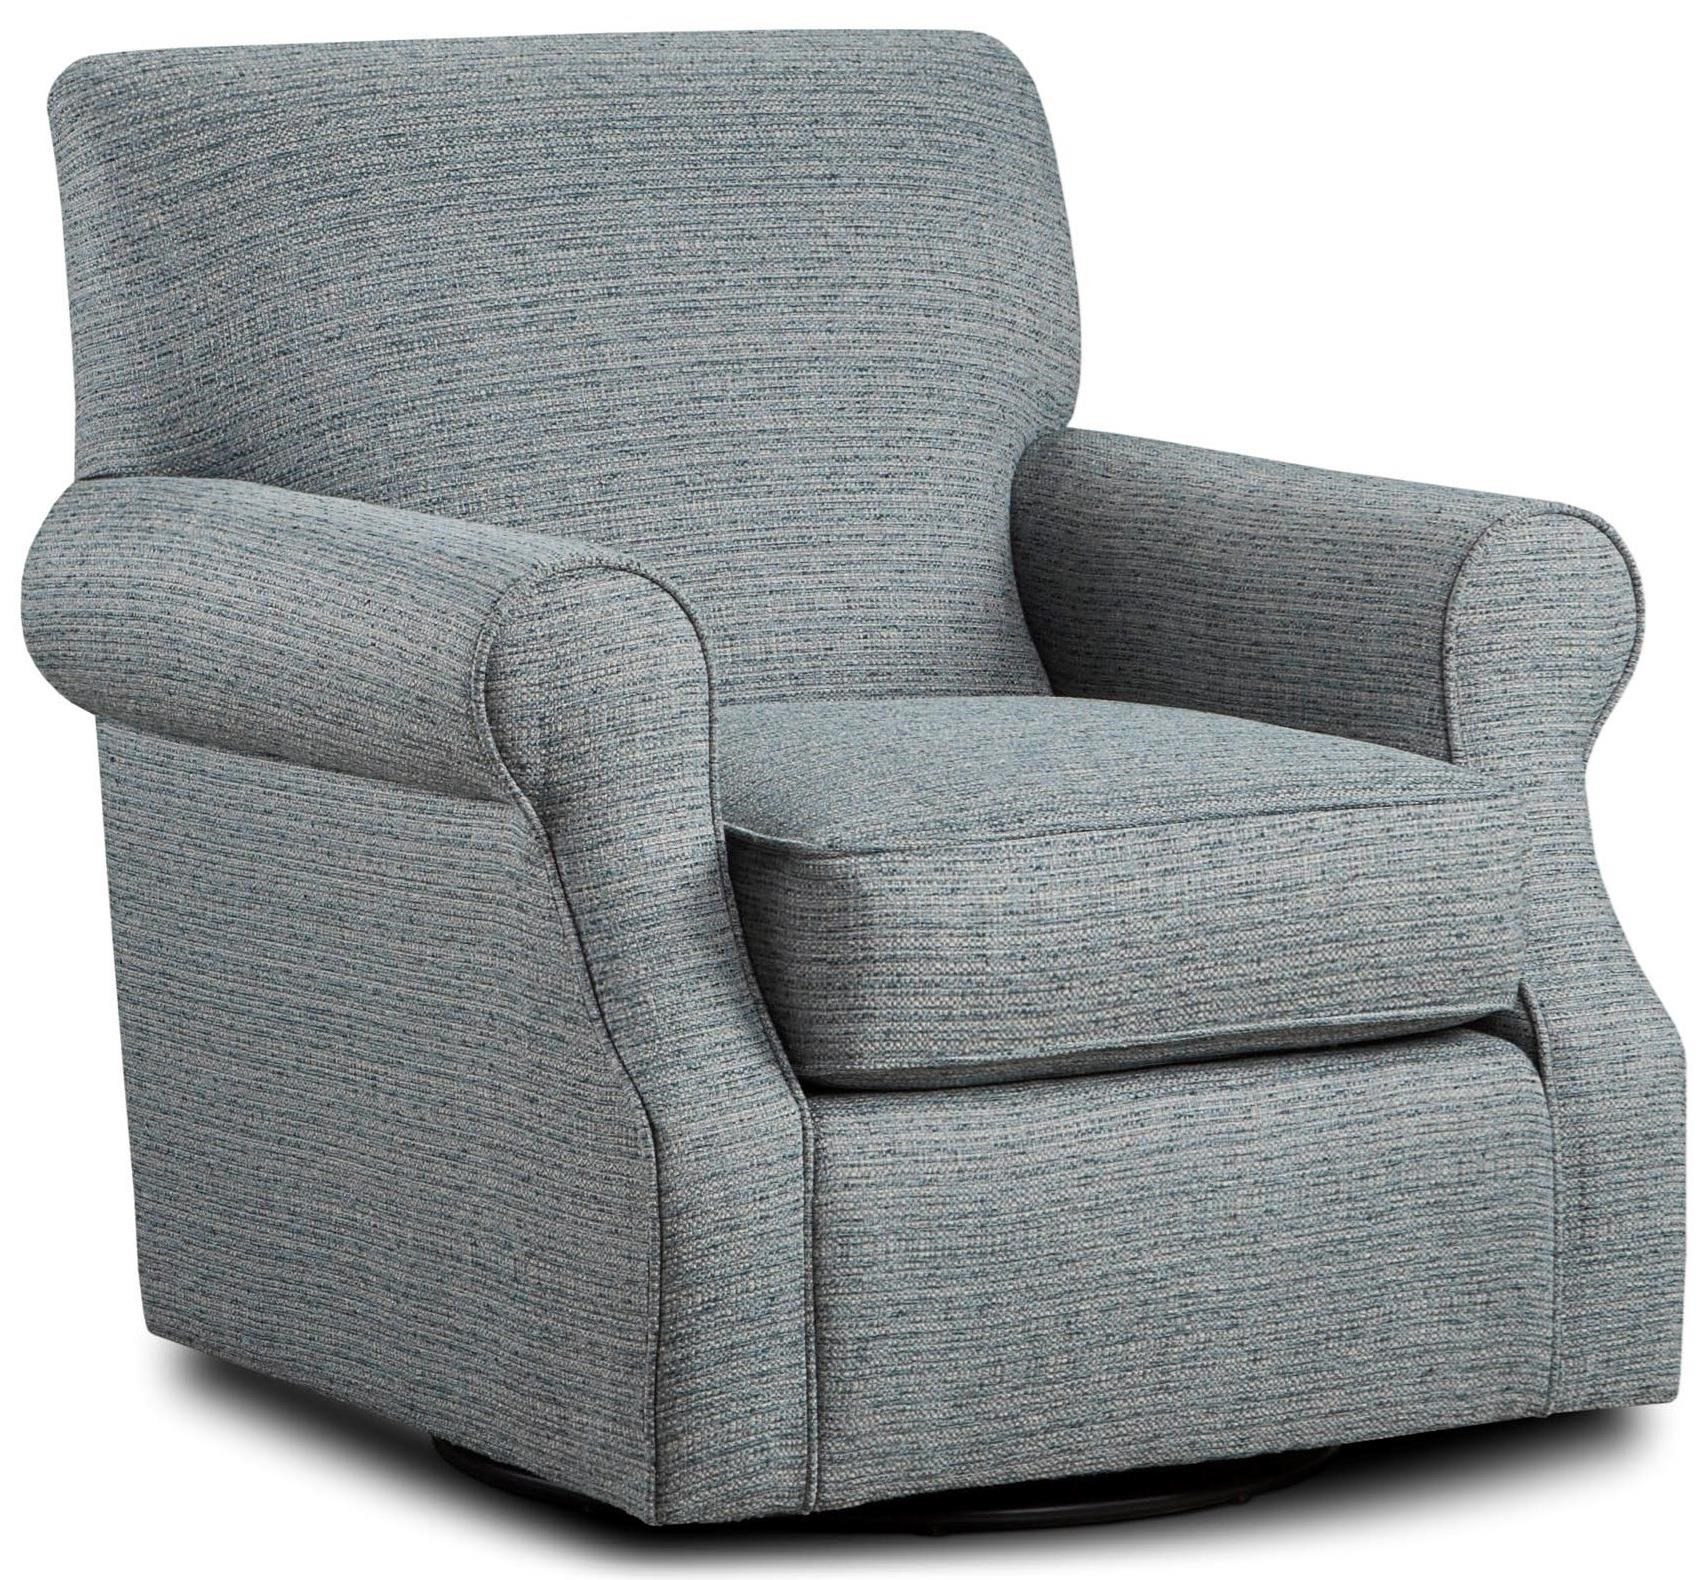 Fusion Furniture 602 Swivel Accent Chair | Lindy's Furniture Company Regarding Umber Grey Swivel Accent Chairs (Image 11 of 20)